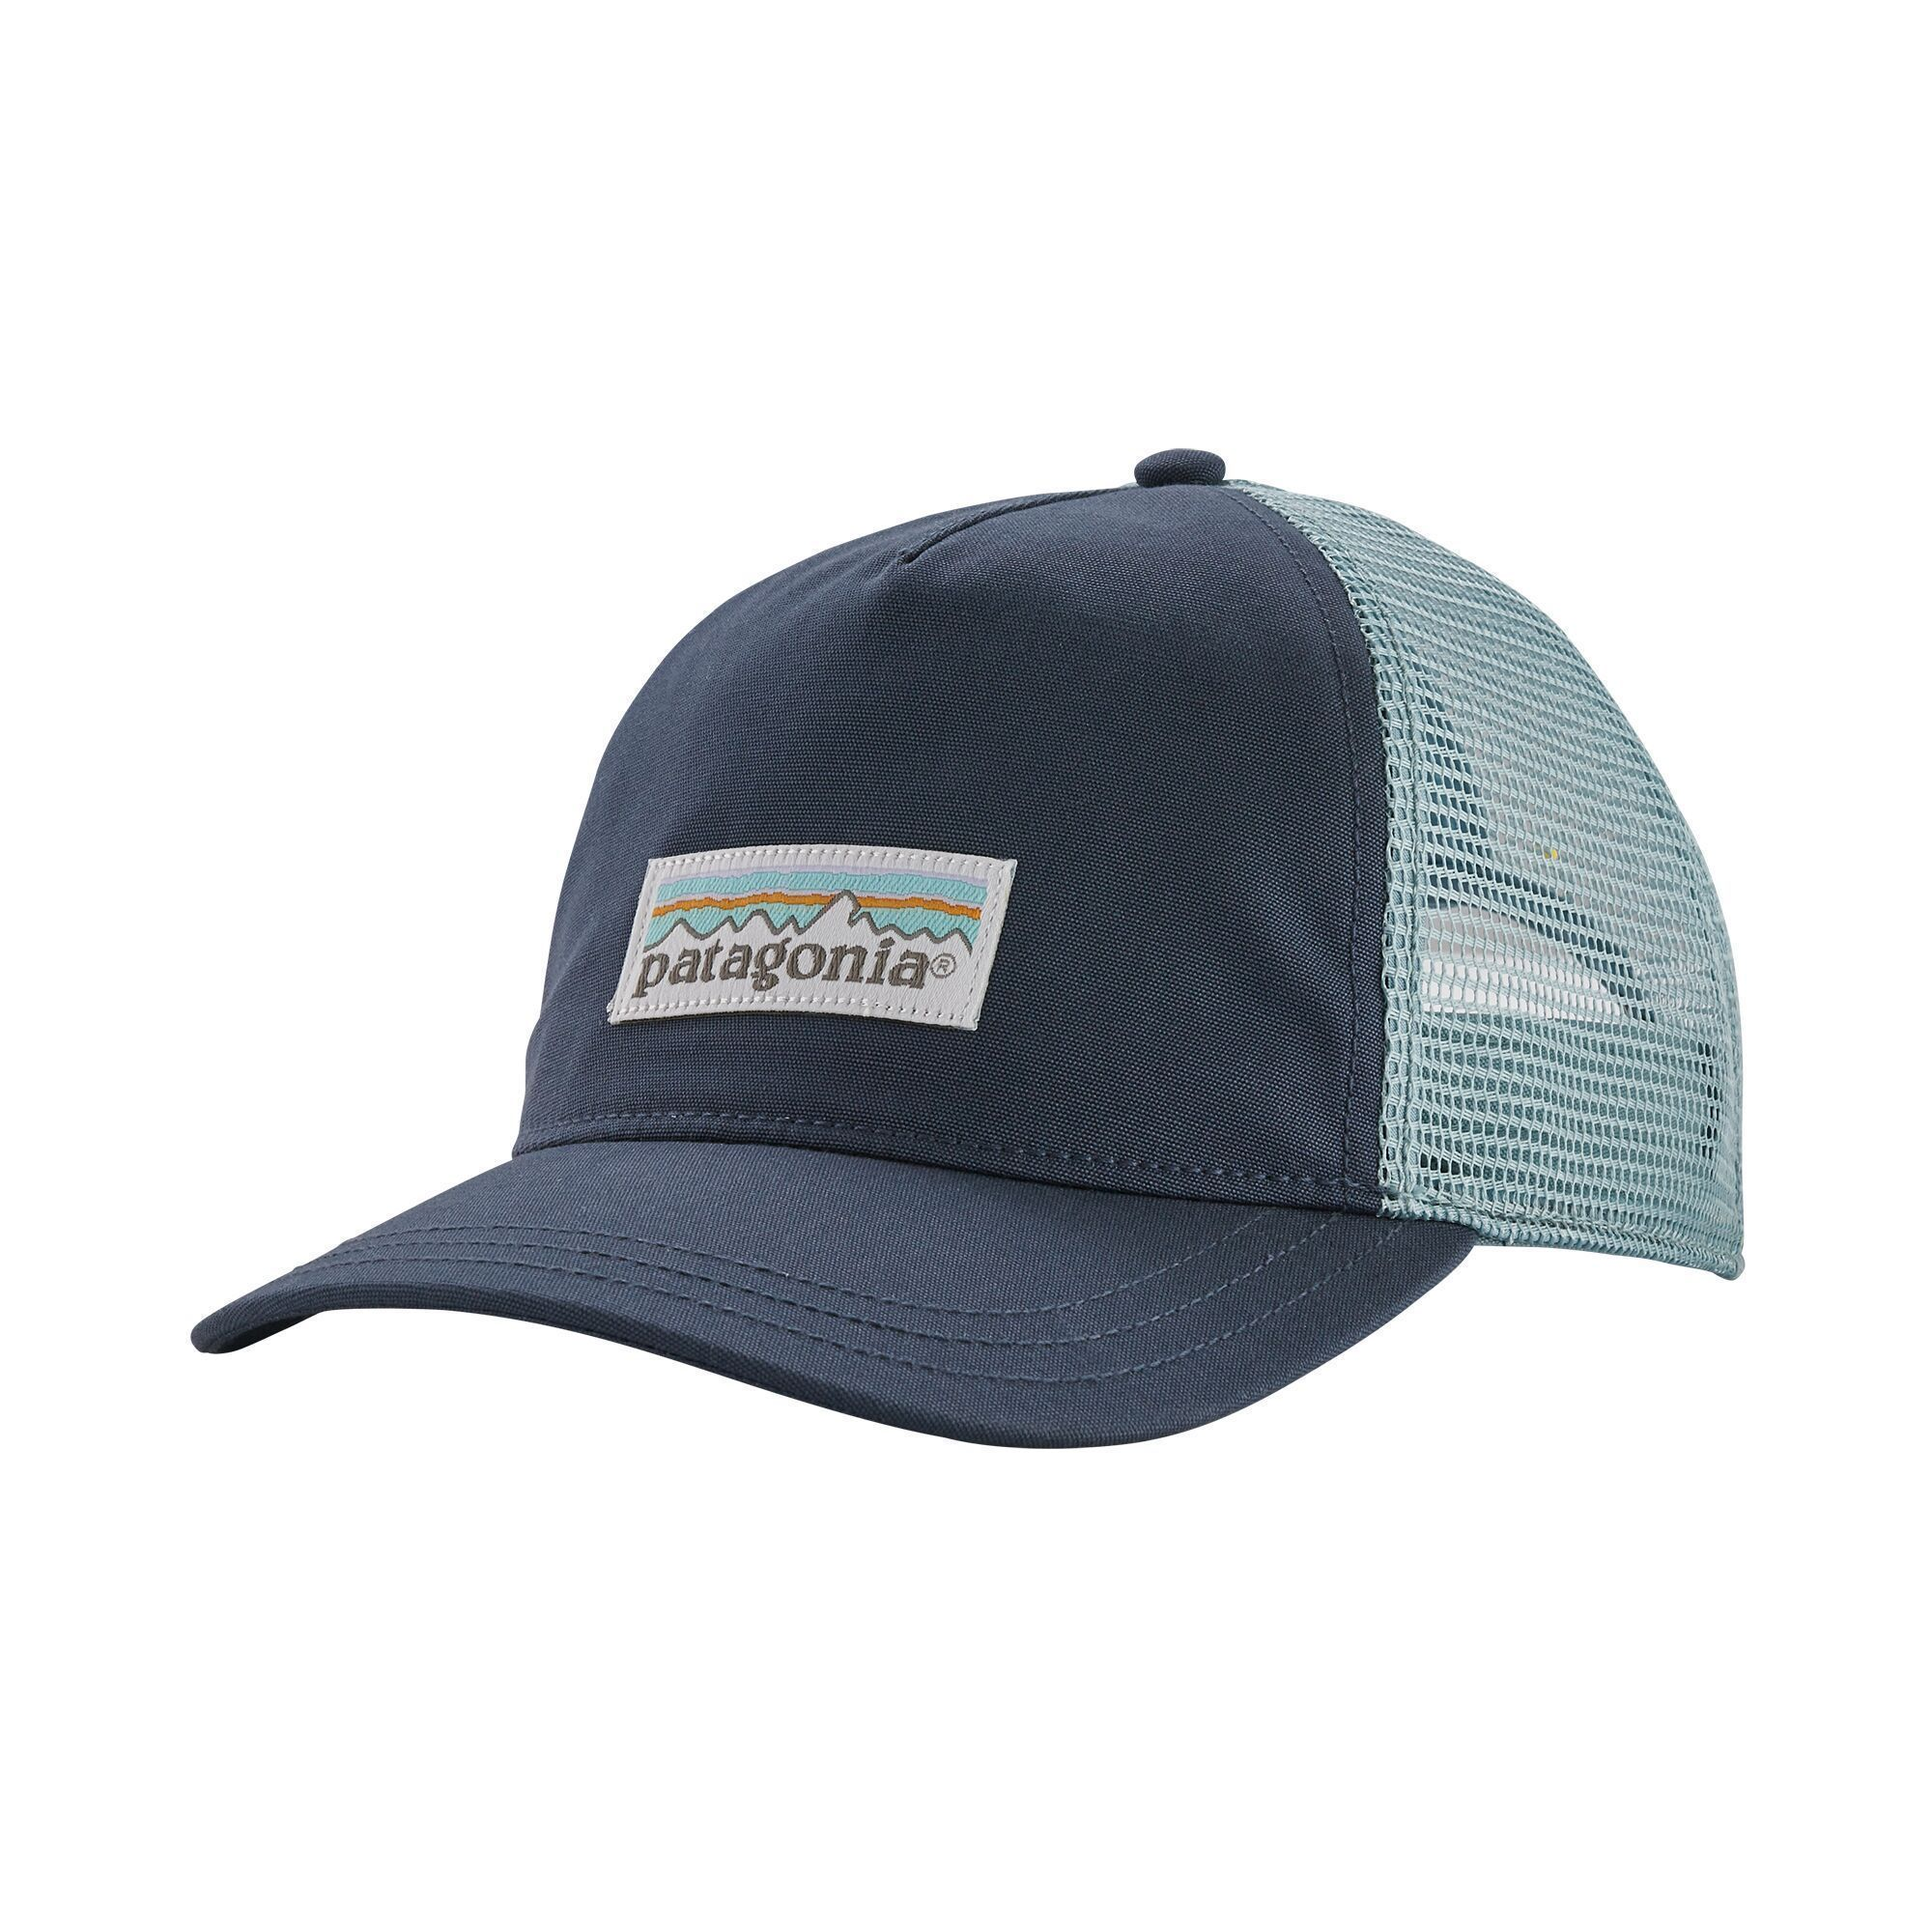 Patagonia - Women's Pastel P-6 Label Layback Trucker Hat - Organic cotton - Weekendbee - sustainable sportswear